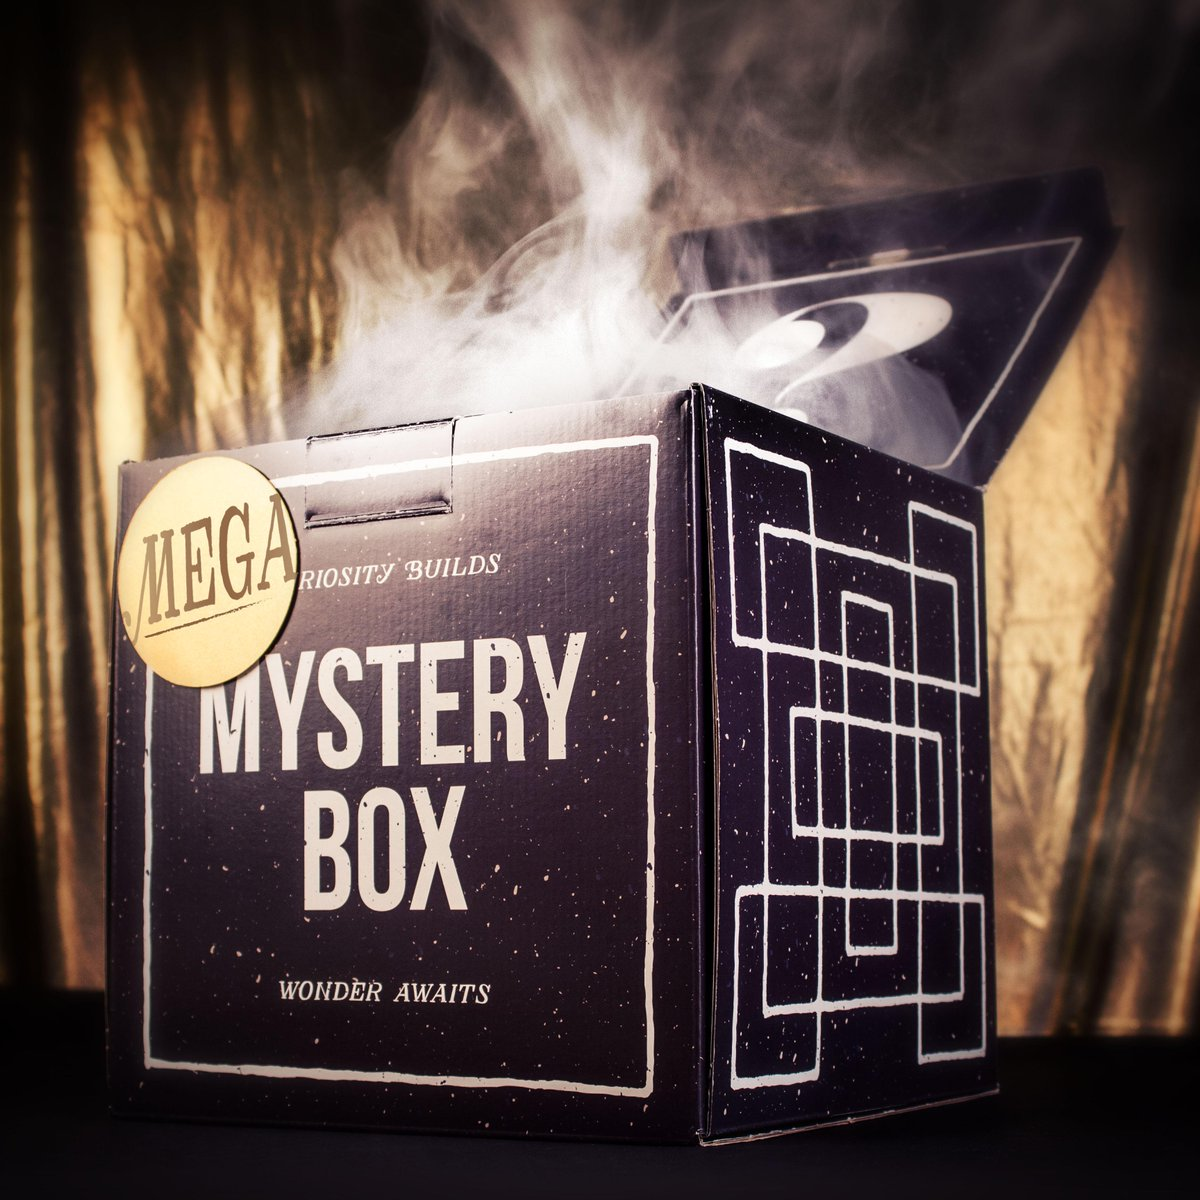 Had enough of Christmas? Fancy winning a £500 mystery box all to yourself? Enter with a simple RT. #win #mymystery http://t.co/3EbYyjMIsd